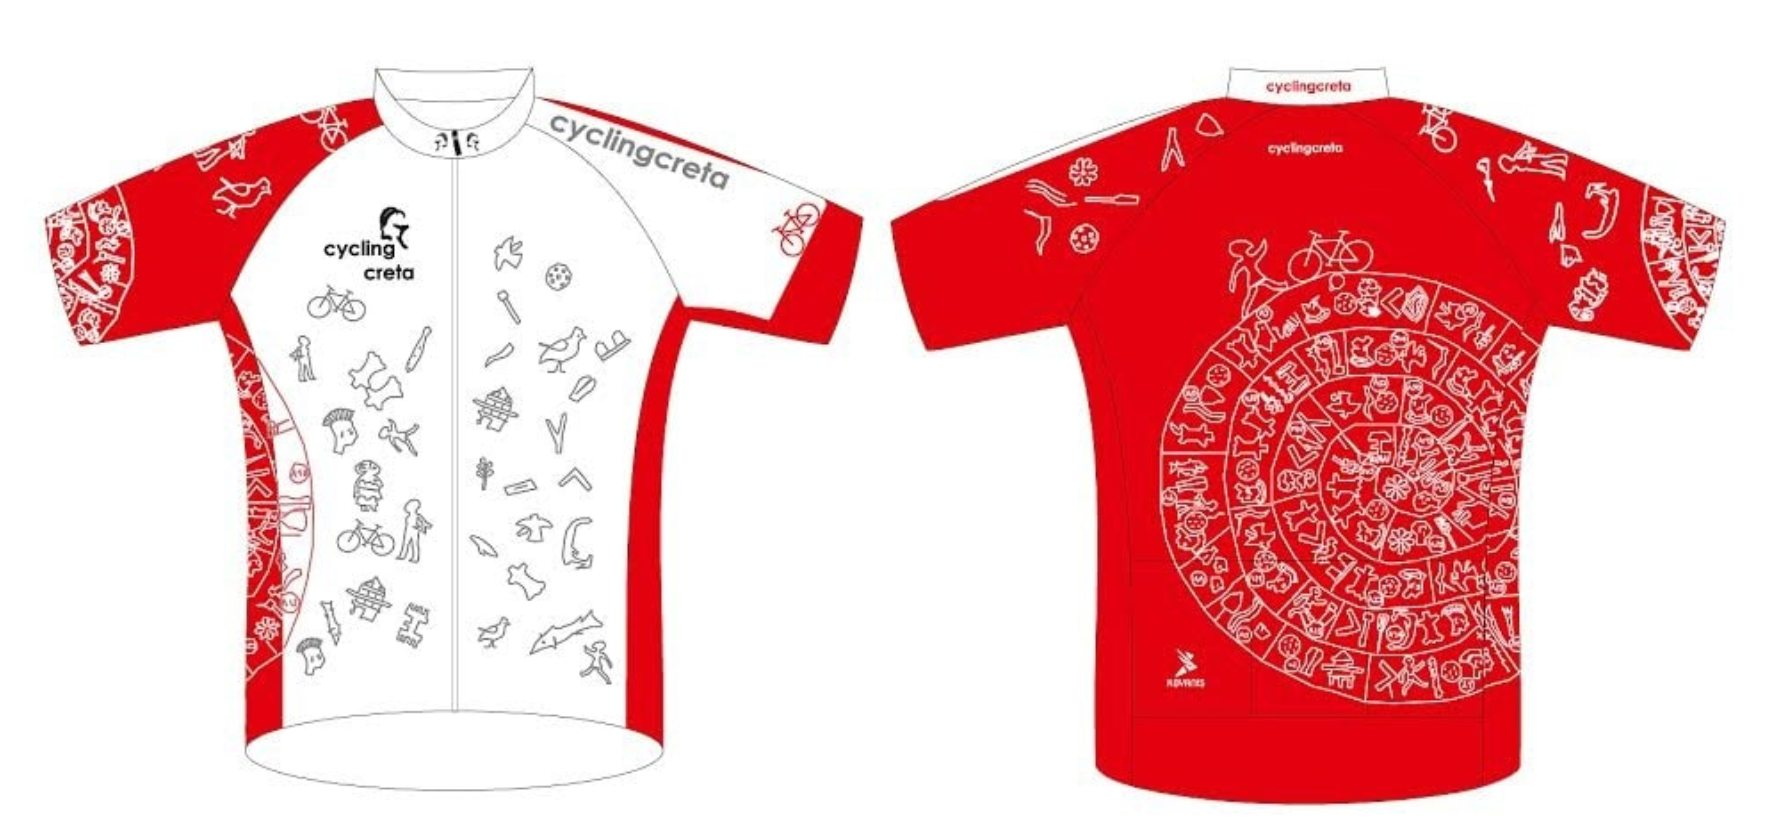 cyclingcreta jersey Festos disc